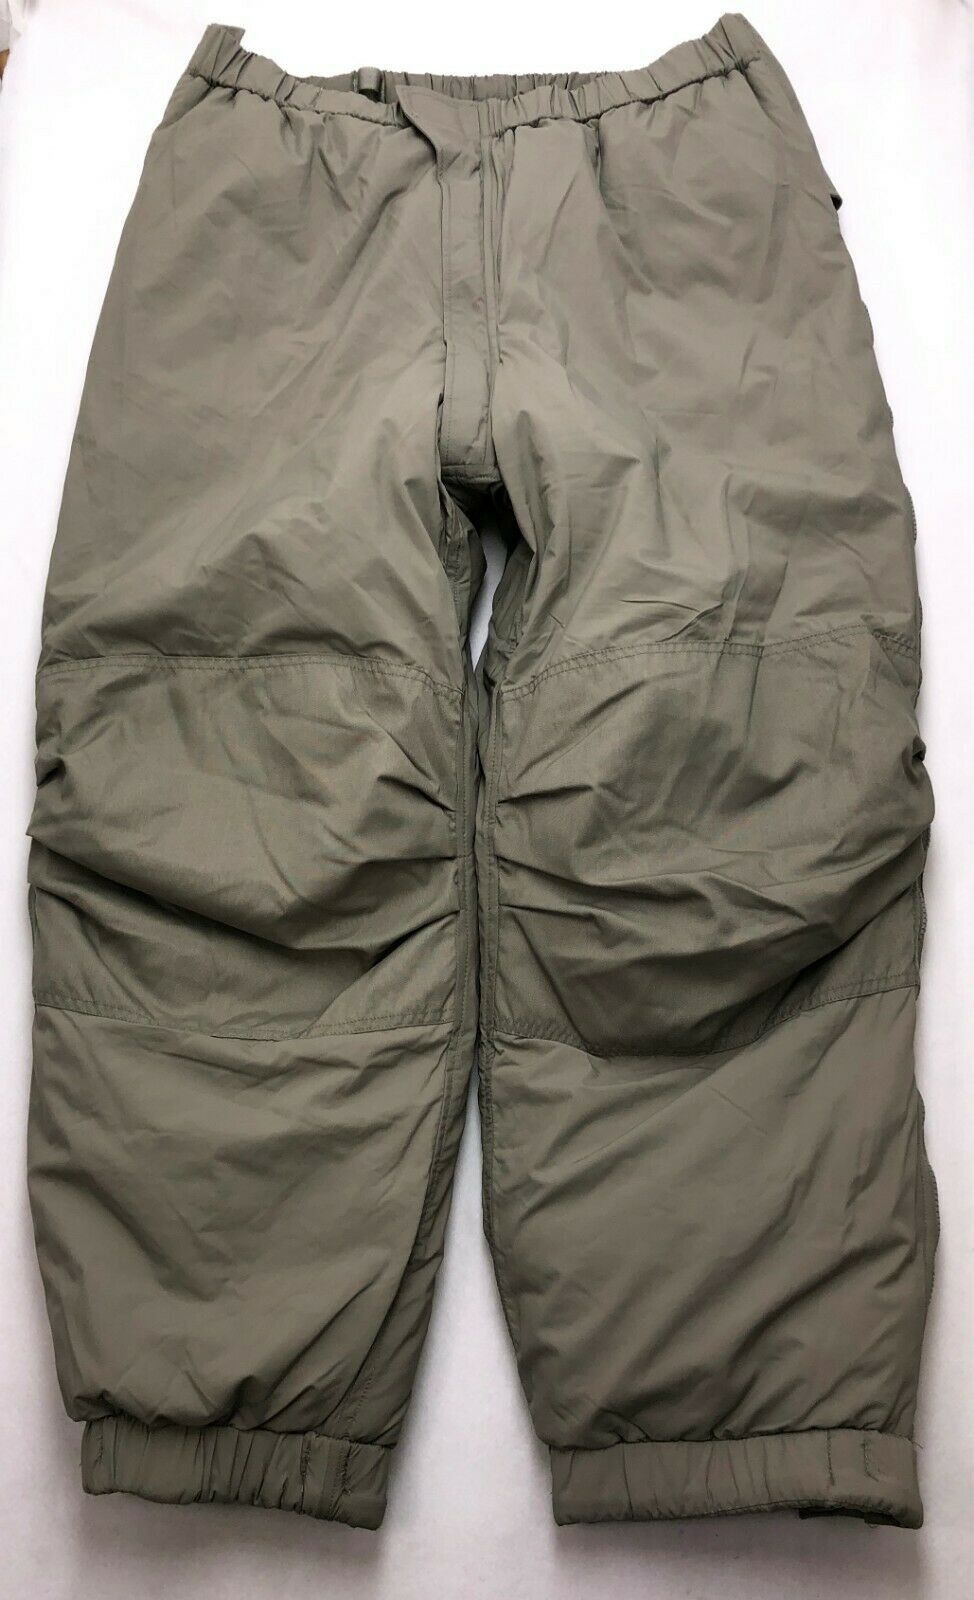 PR123 Gen III 3 Level 7 Extreme Cold Weather Military Hose Trousers sz L Long